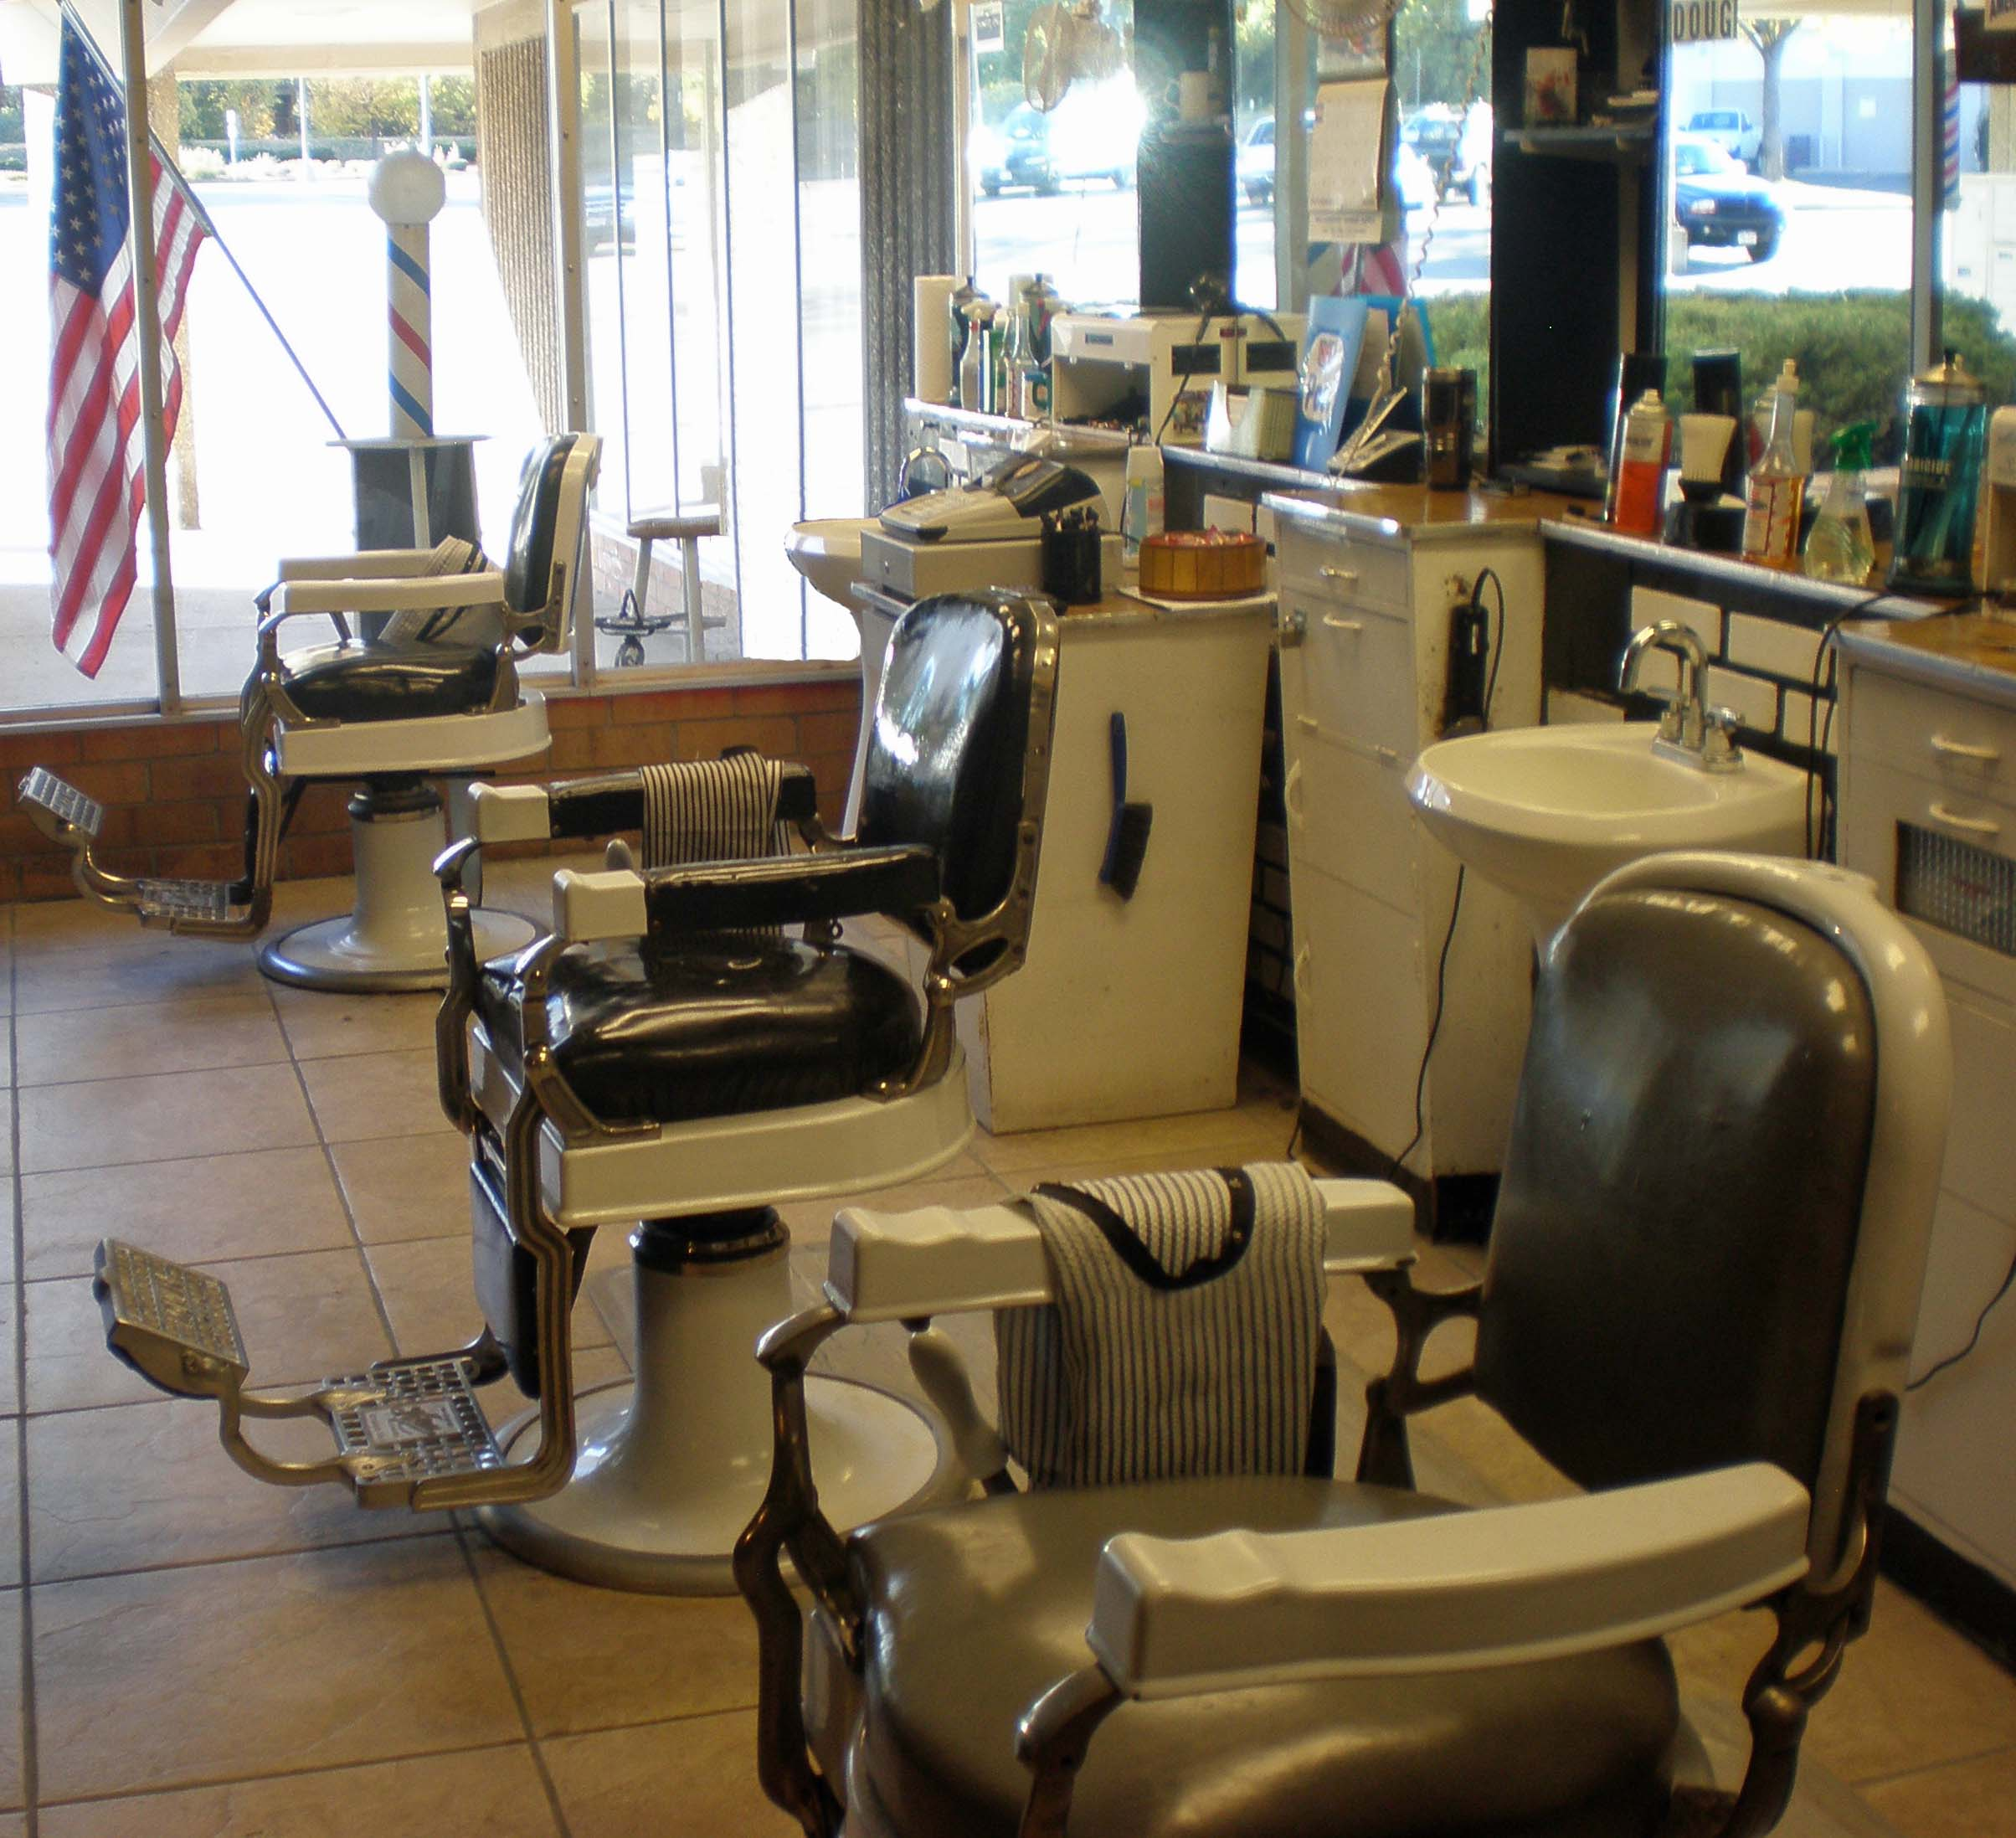 Koken barber chair serial number - Gallery Of Koken Barber Chair